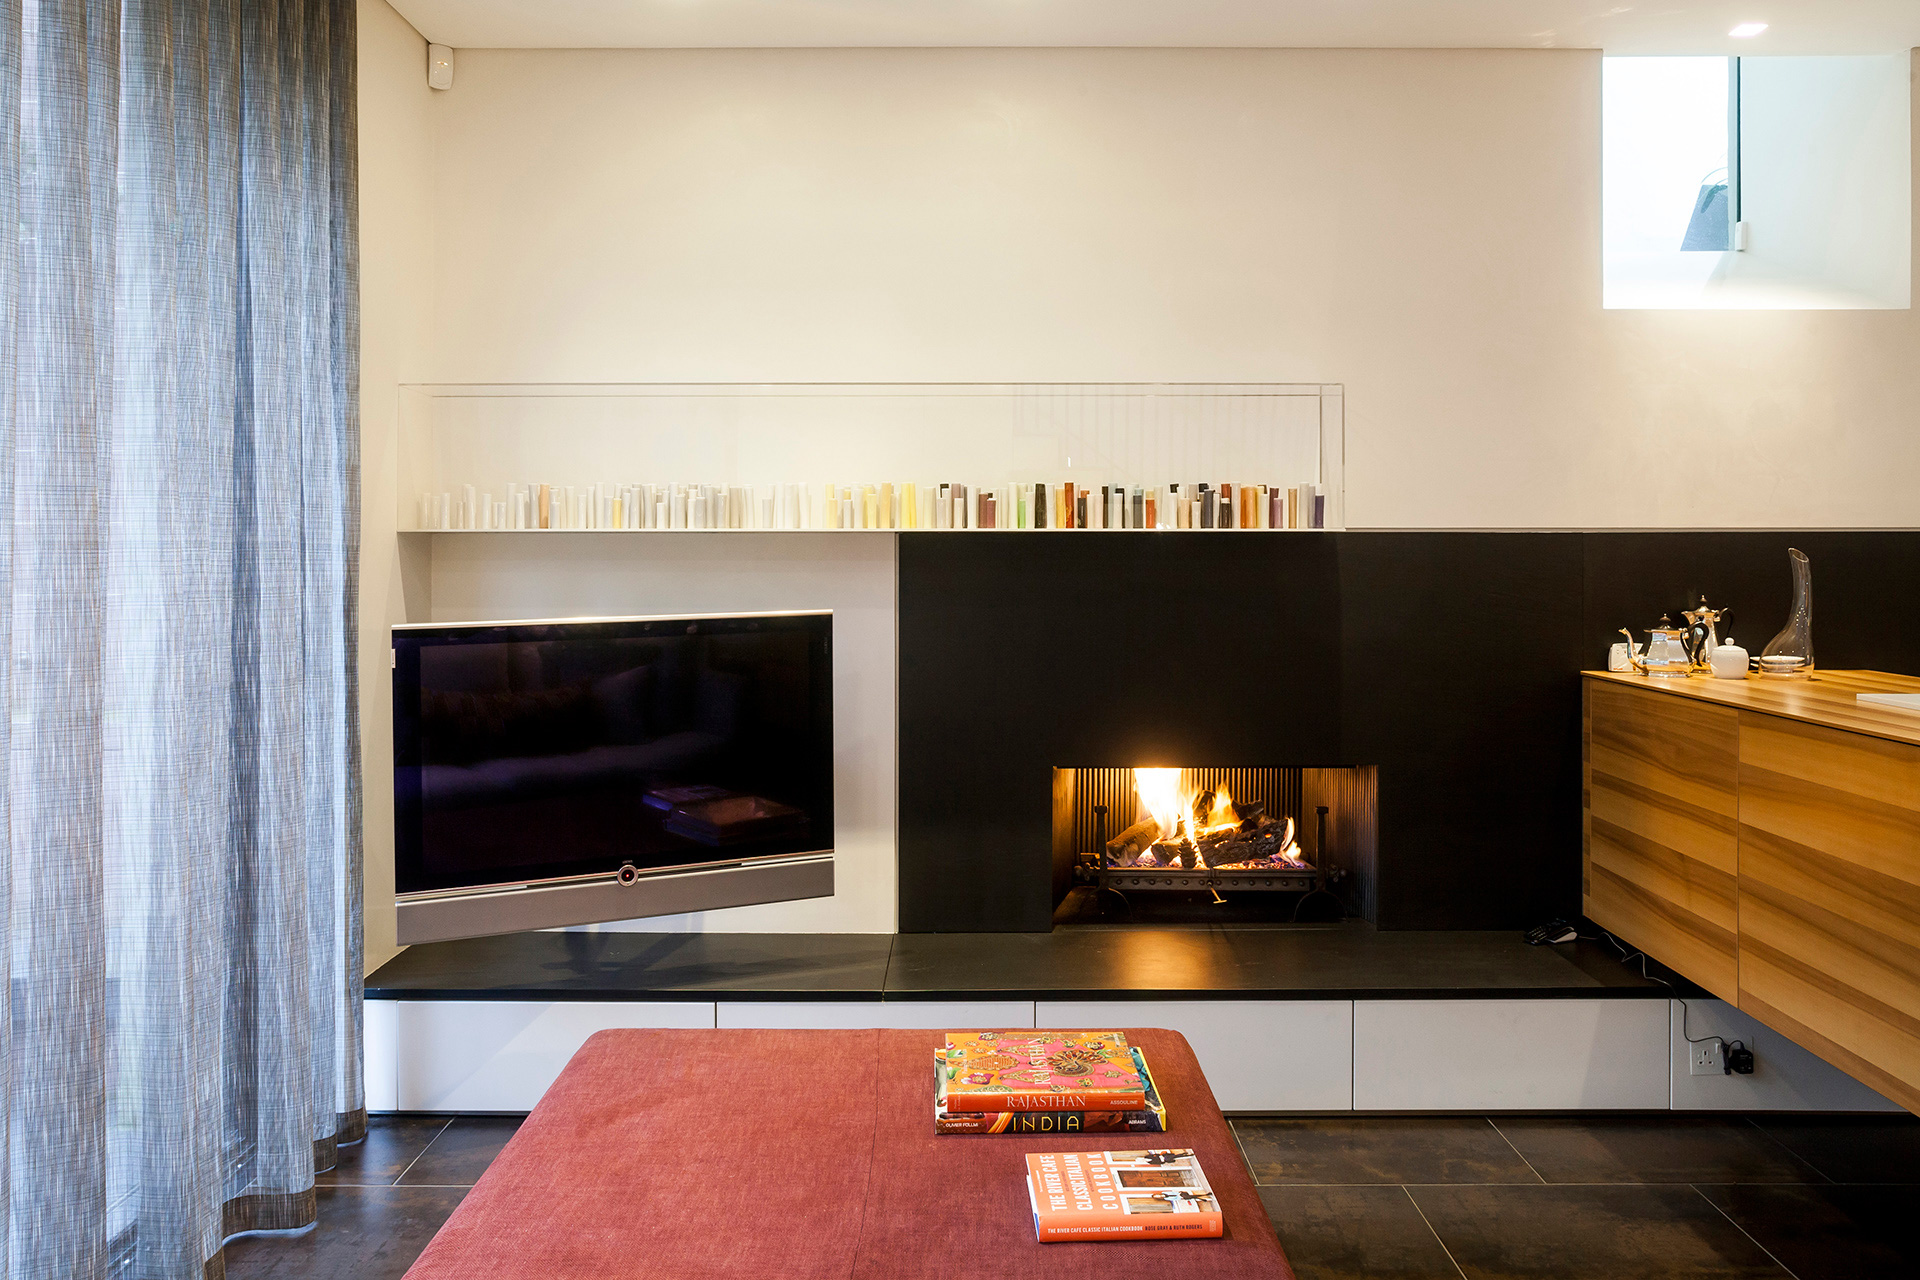 Studio 29 residential architects interior design notting hill 07